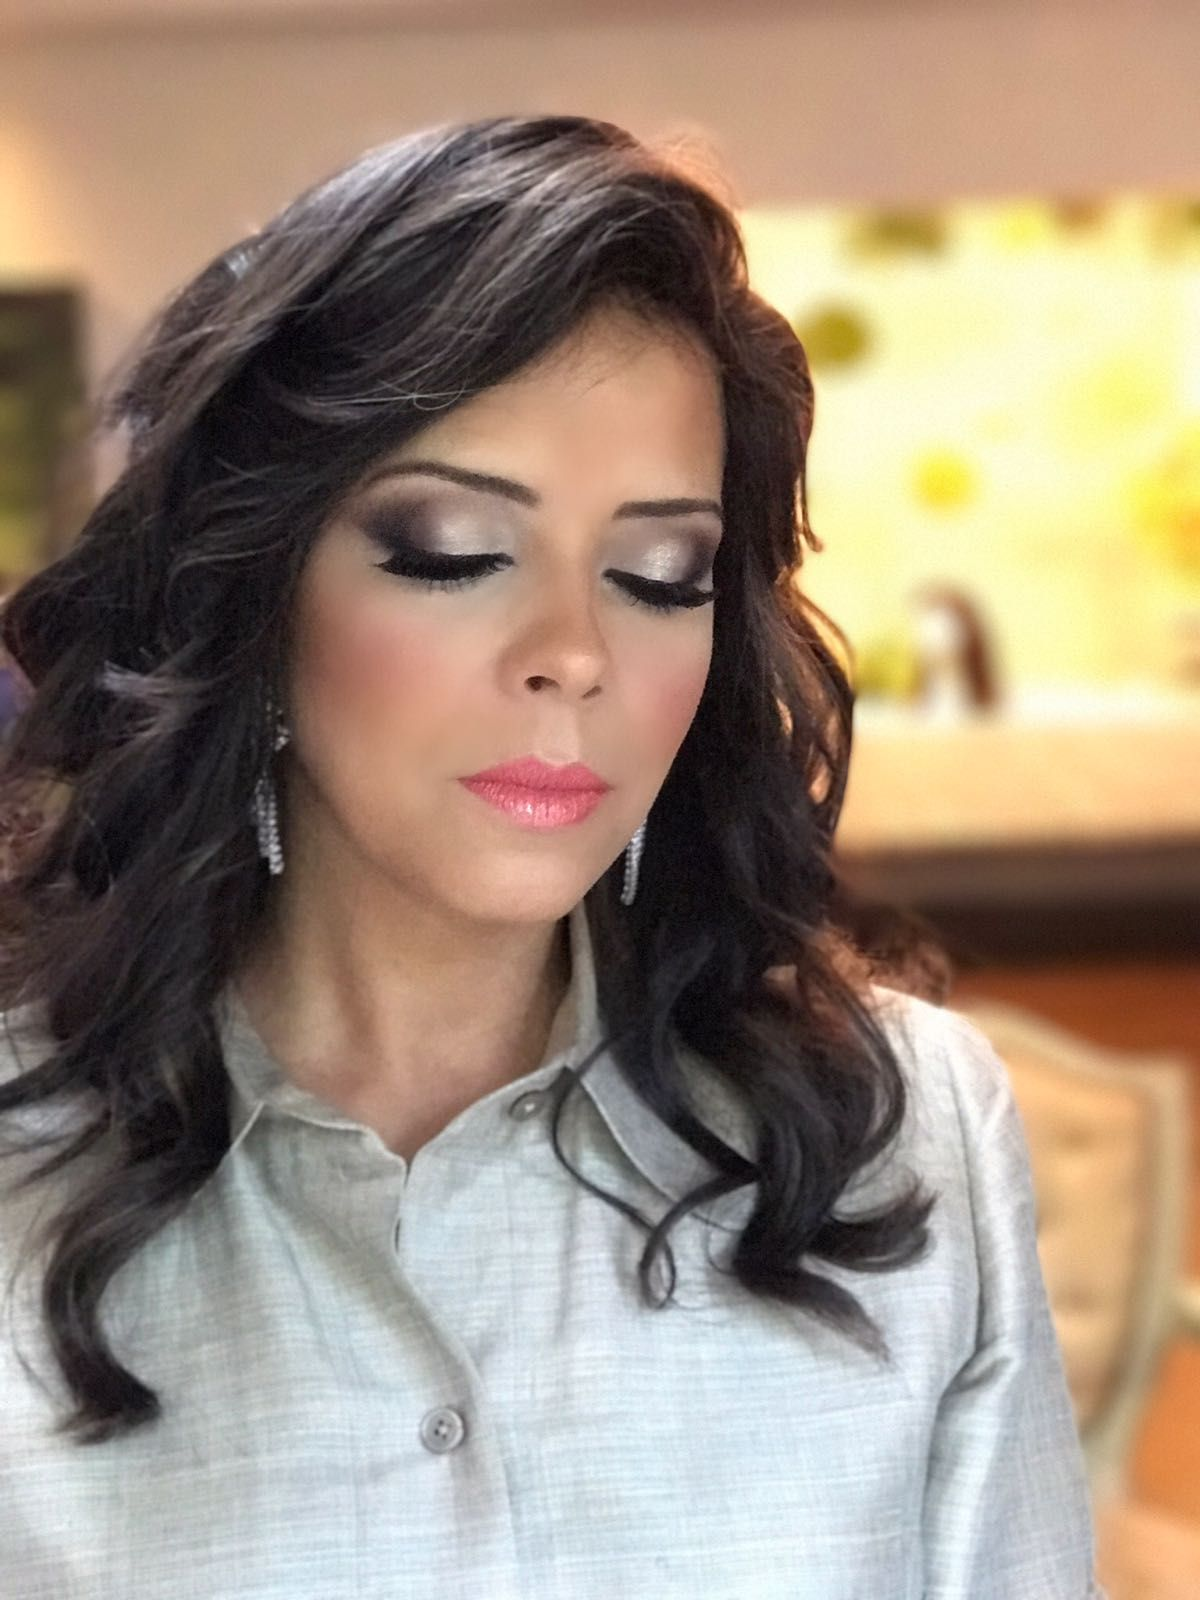 Glam makeup inspiration for mother of the bride in 2019